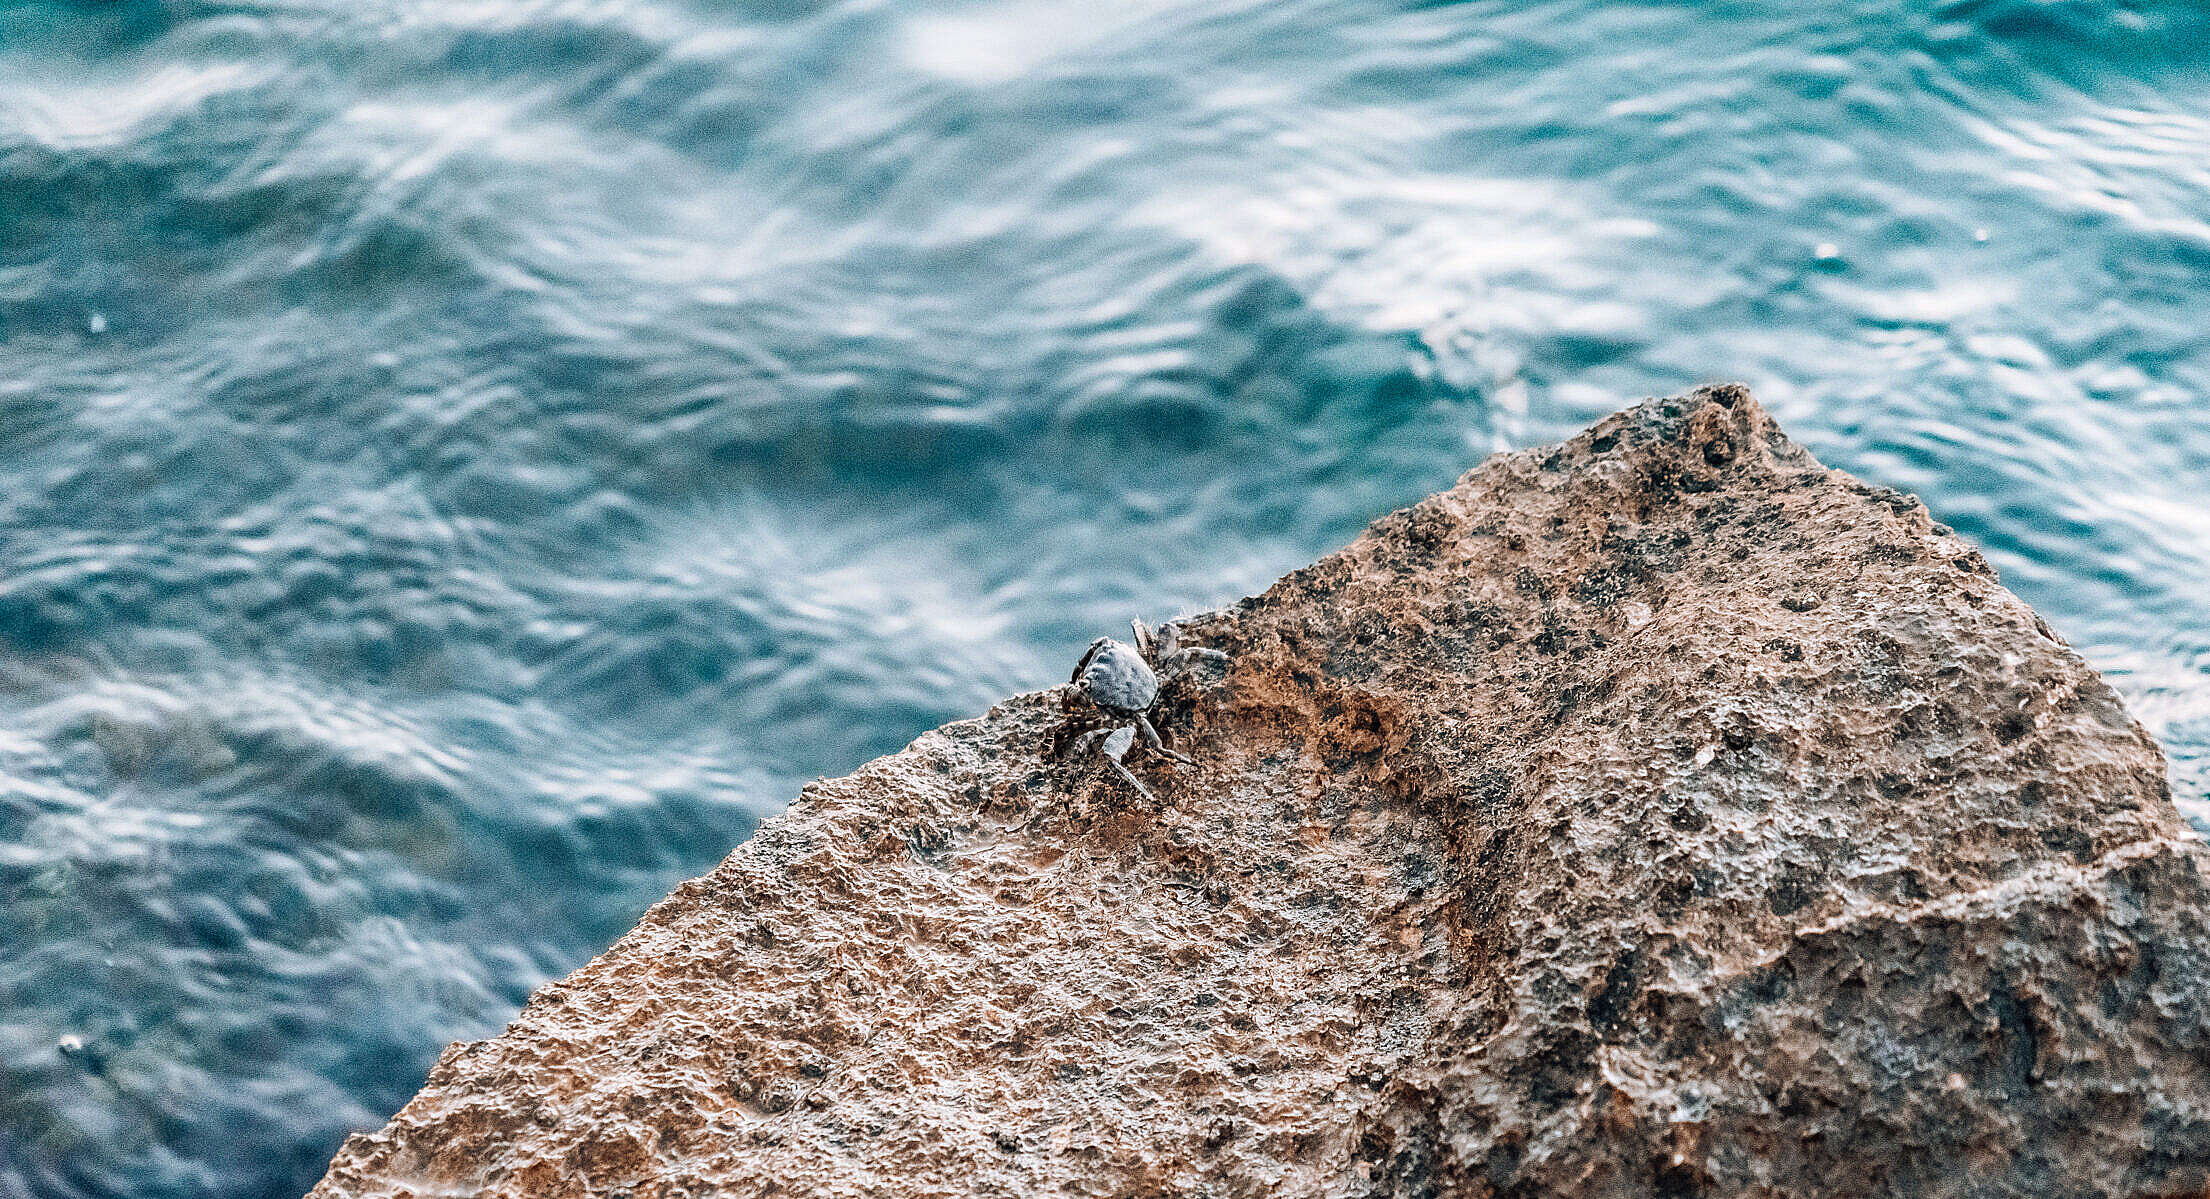 Masked Crab on a Rocky Shore Free Stock Photo